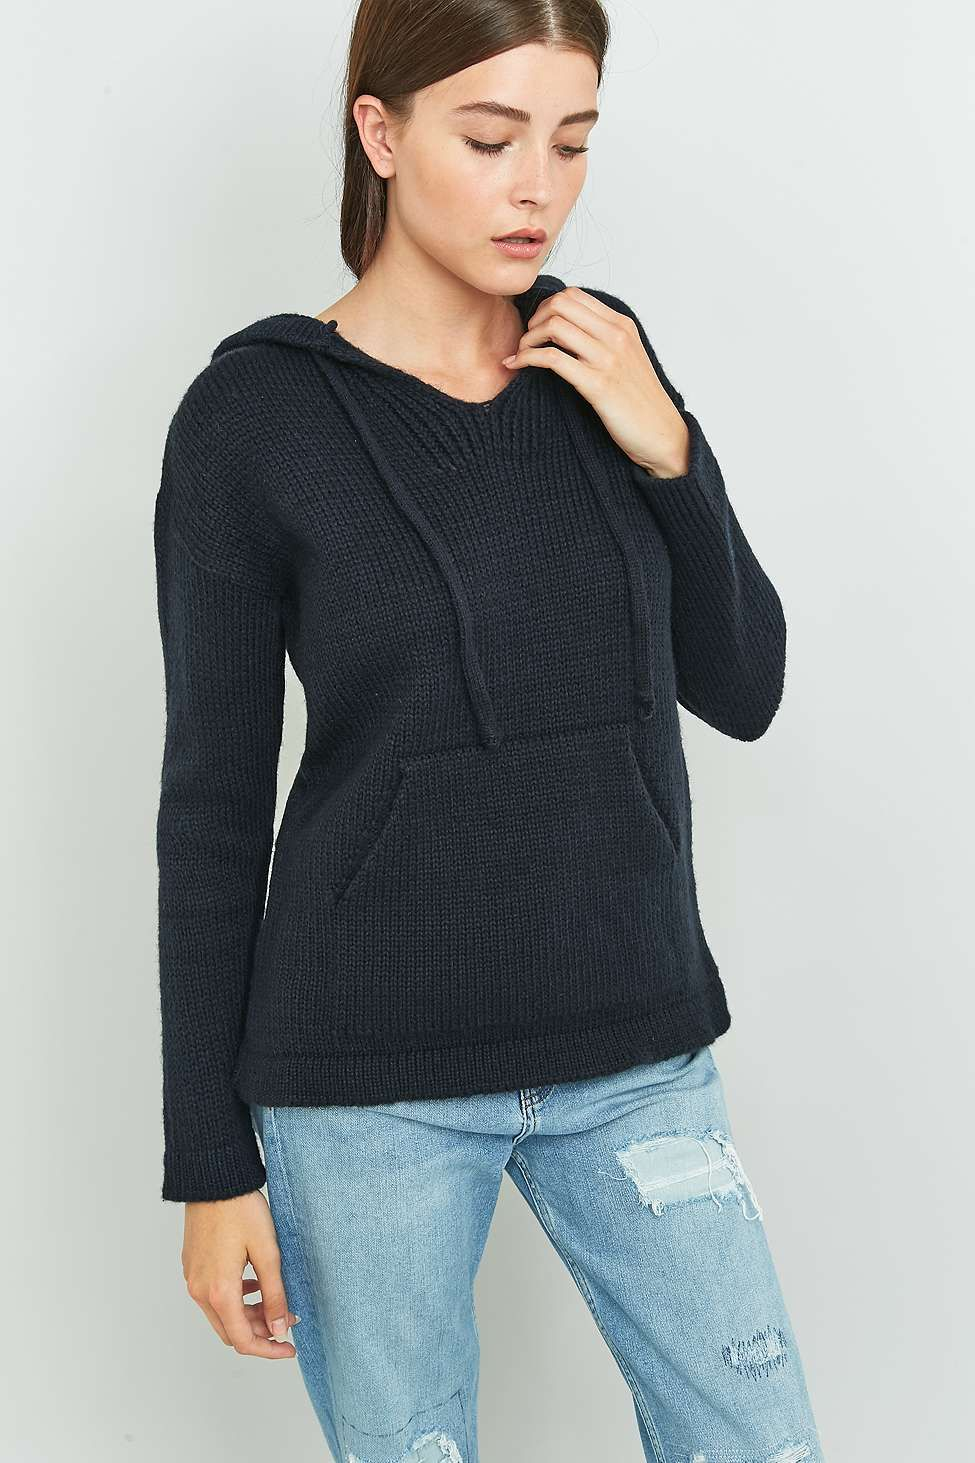 Light Before Dark Las Vegas Jumper Hoodie Sofifash Pinterest